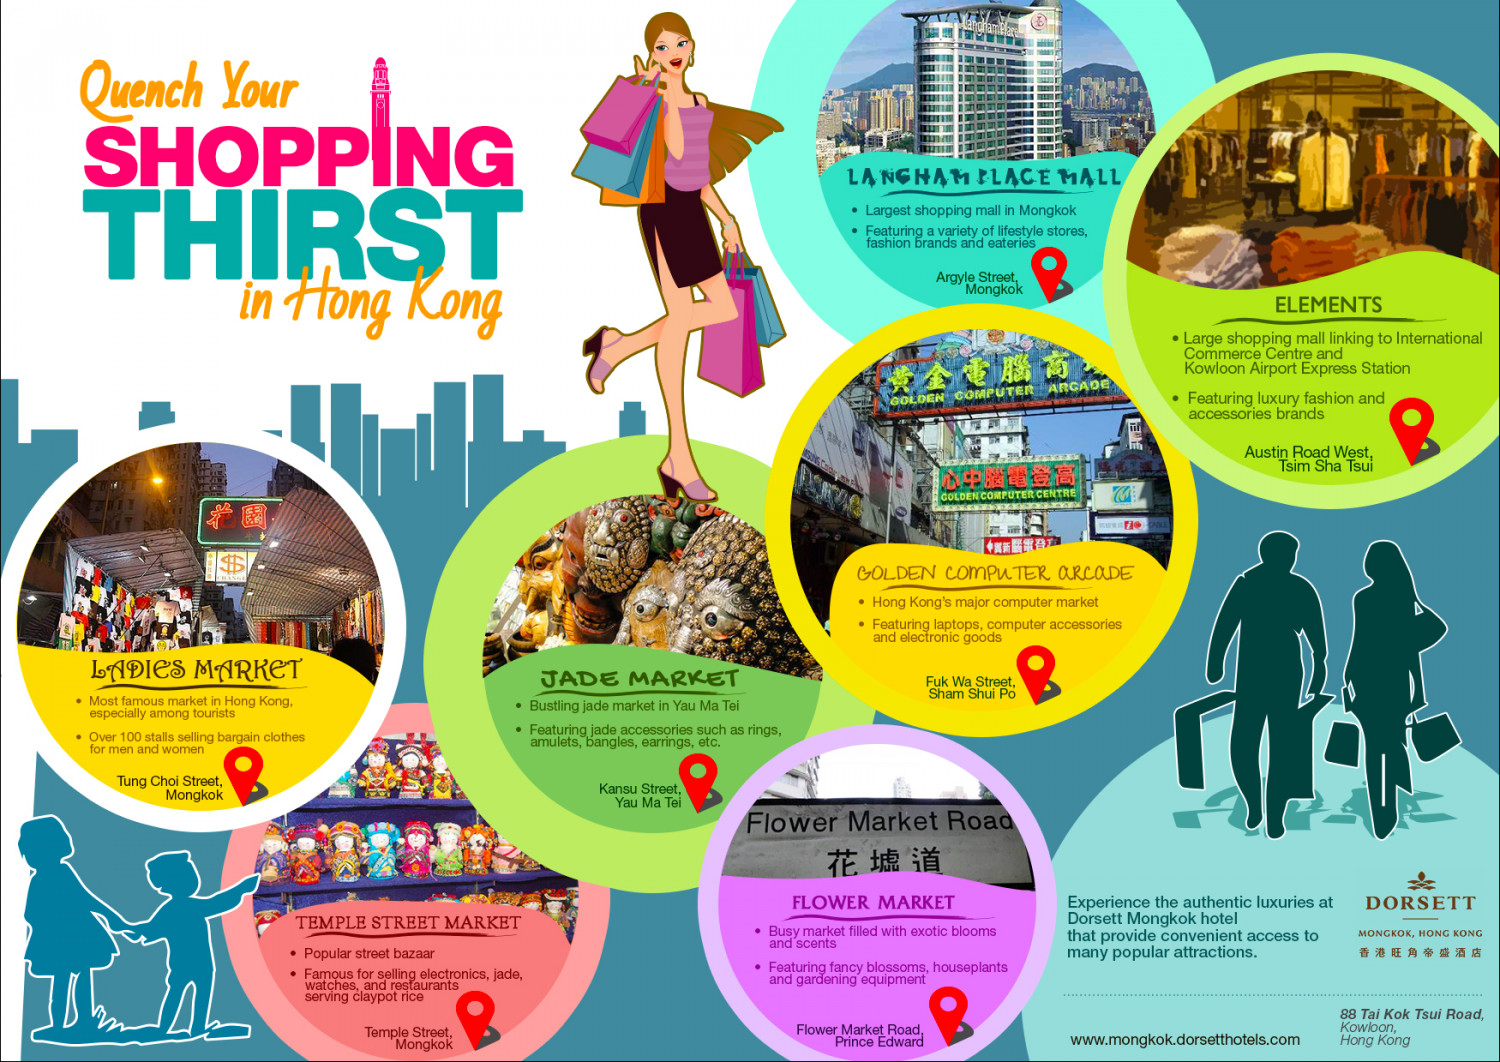 Quench Your Shopping Thirst in Hong Kong Infographic